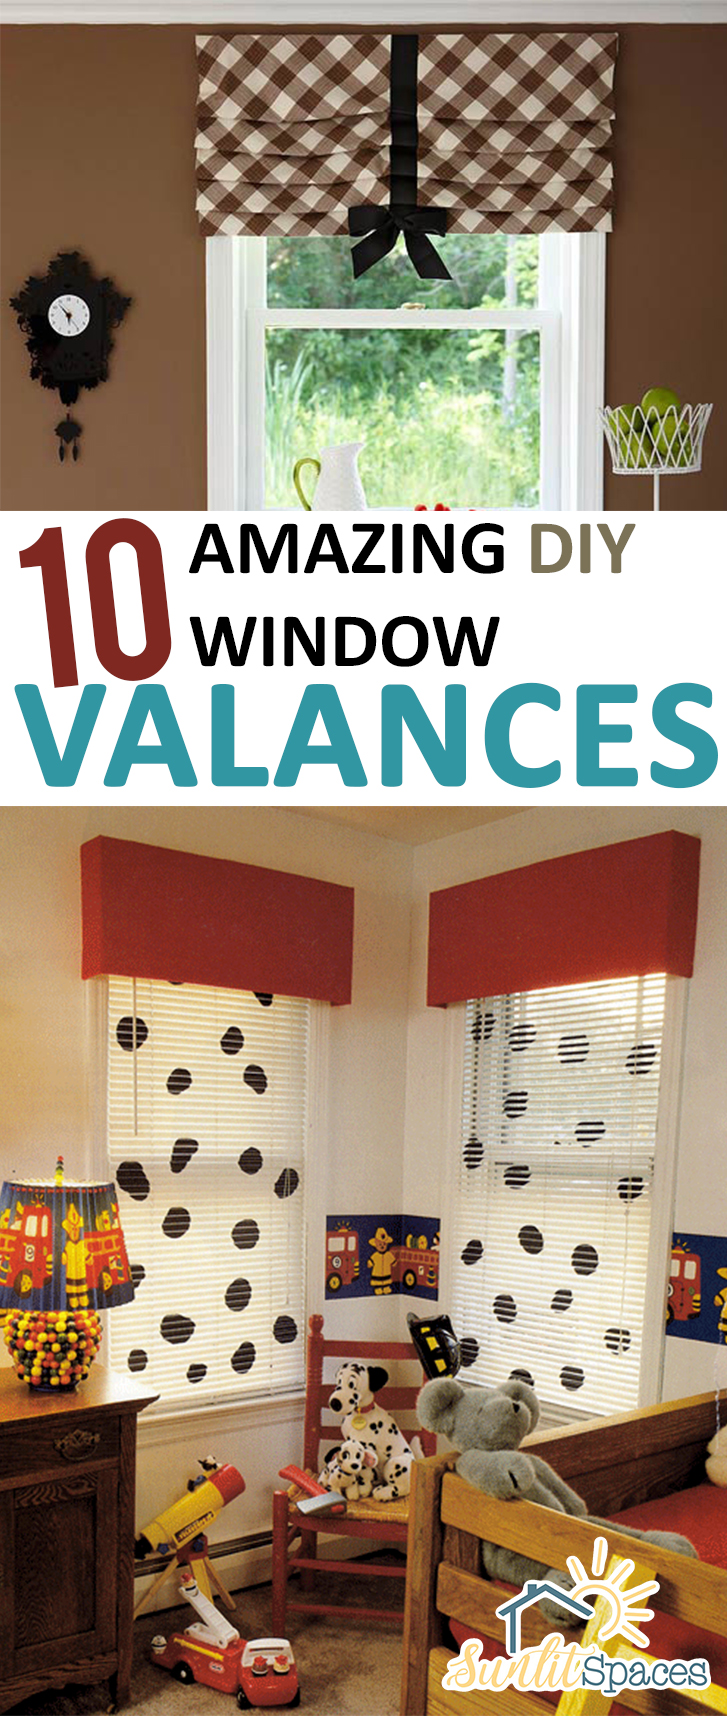 Homemade Valances For Windows : Amazing diy window valances